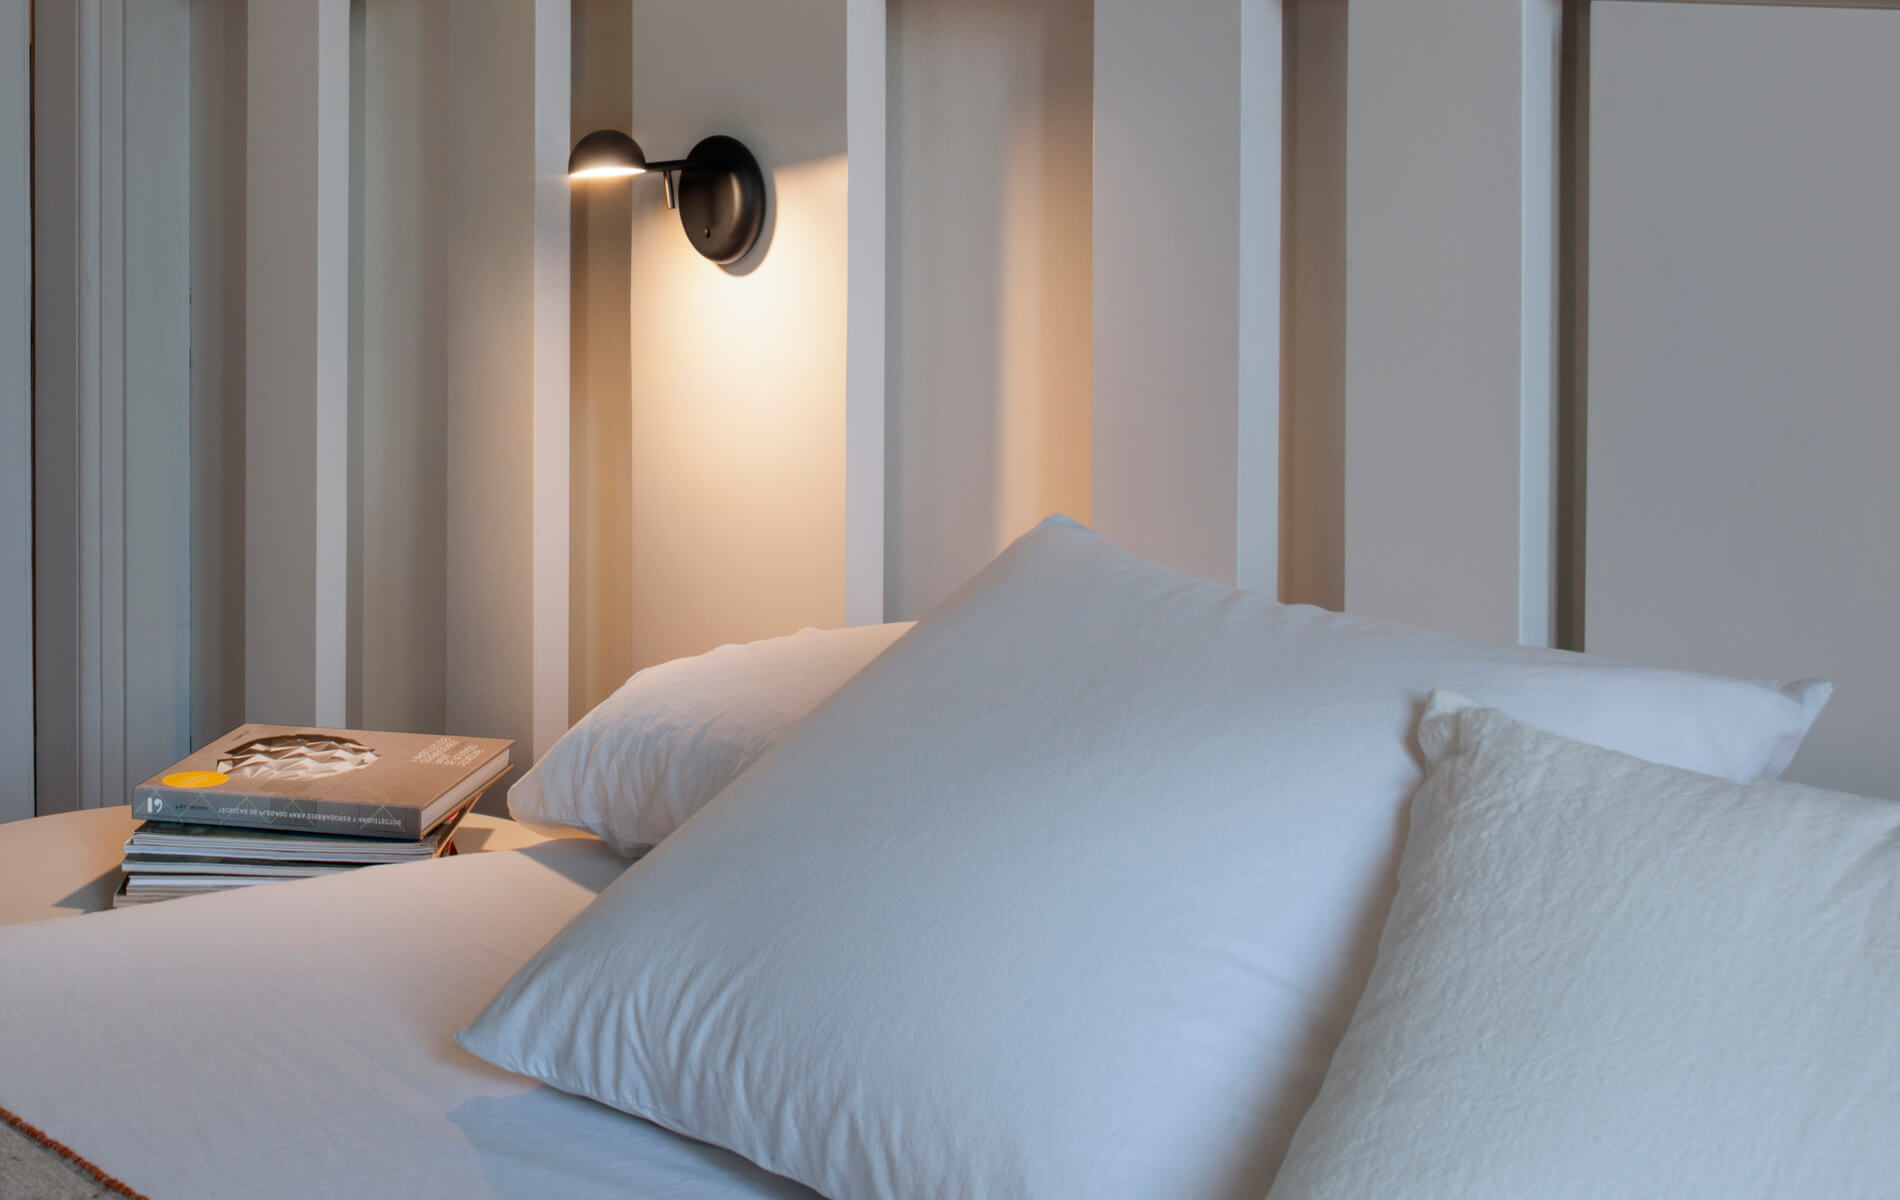 More information of Vibia PIN wall lamp